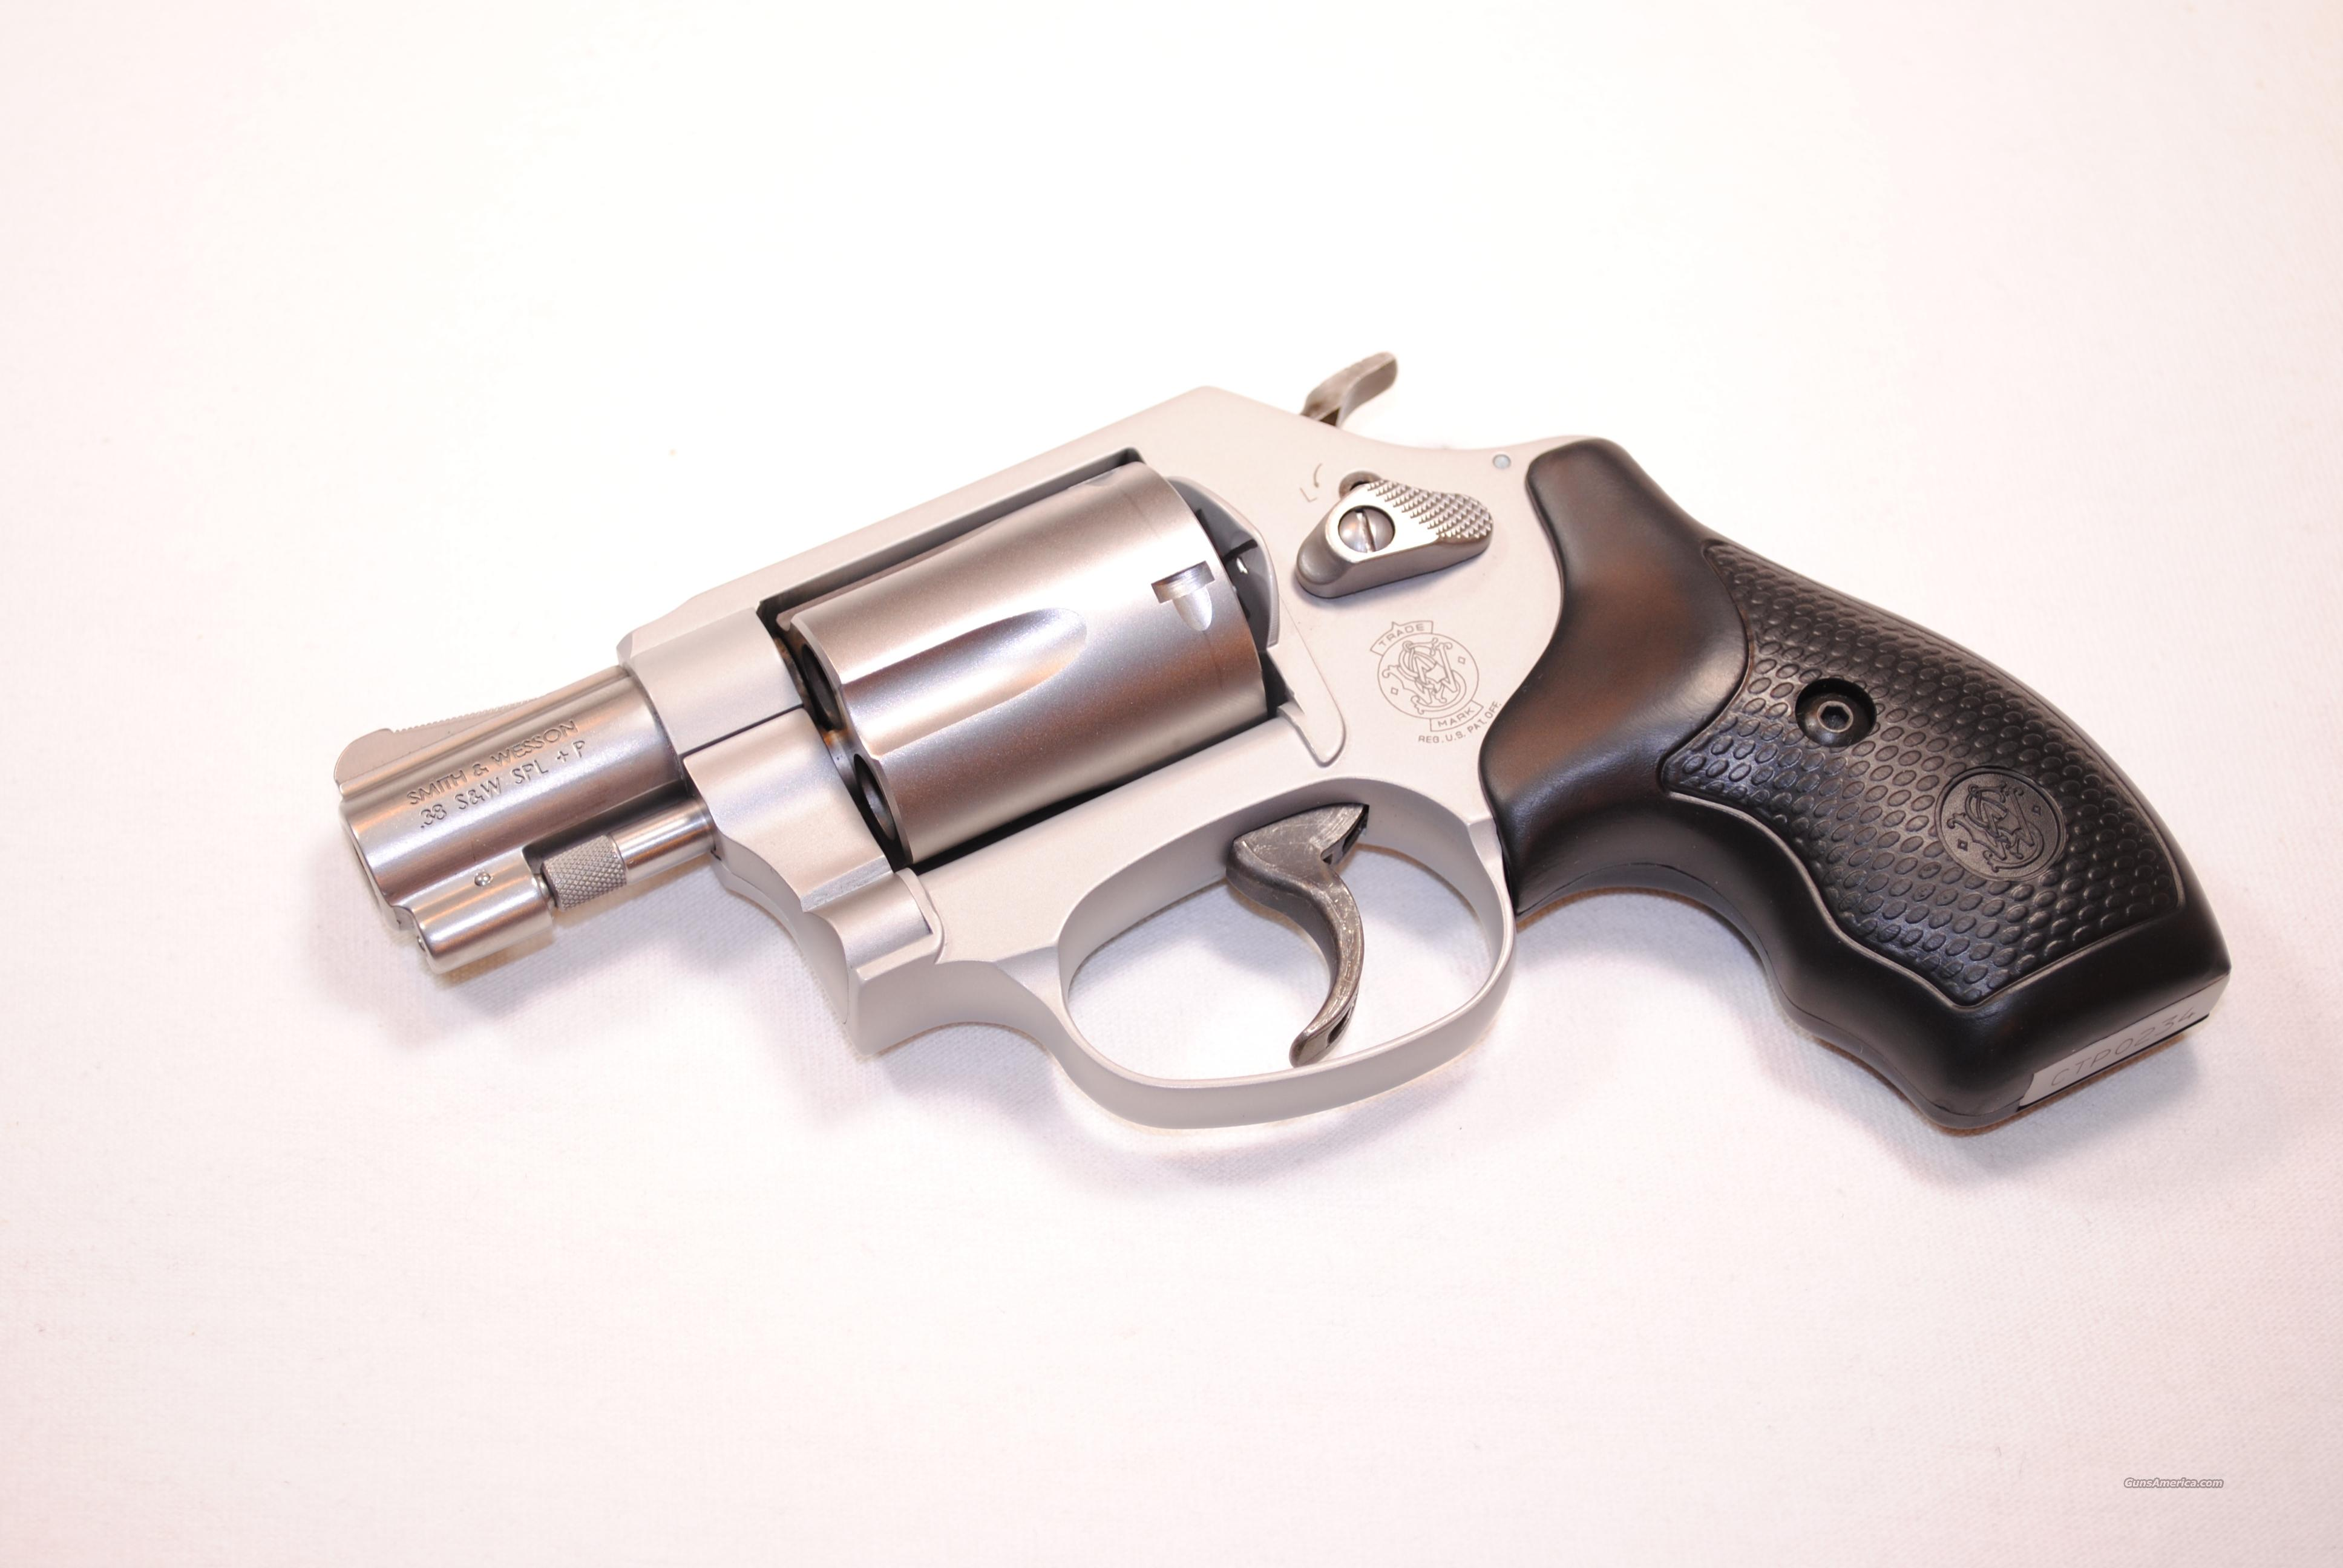 SMITH & WESSON 637 AIRWEIGHT exposed hammer  Guns > Pistols > Smith & Wesson Revolvers > Pocket Pistols